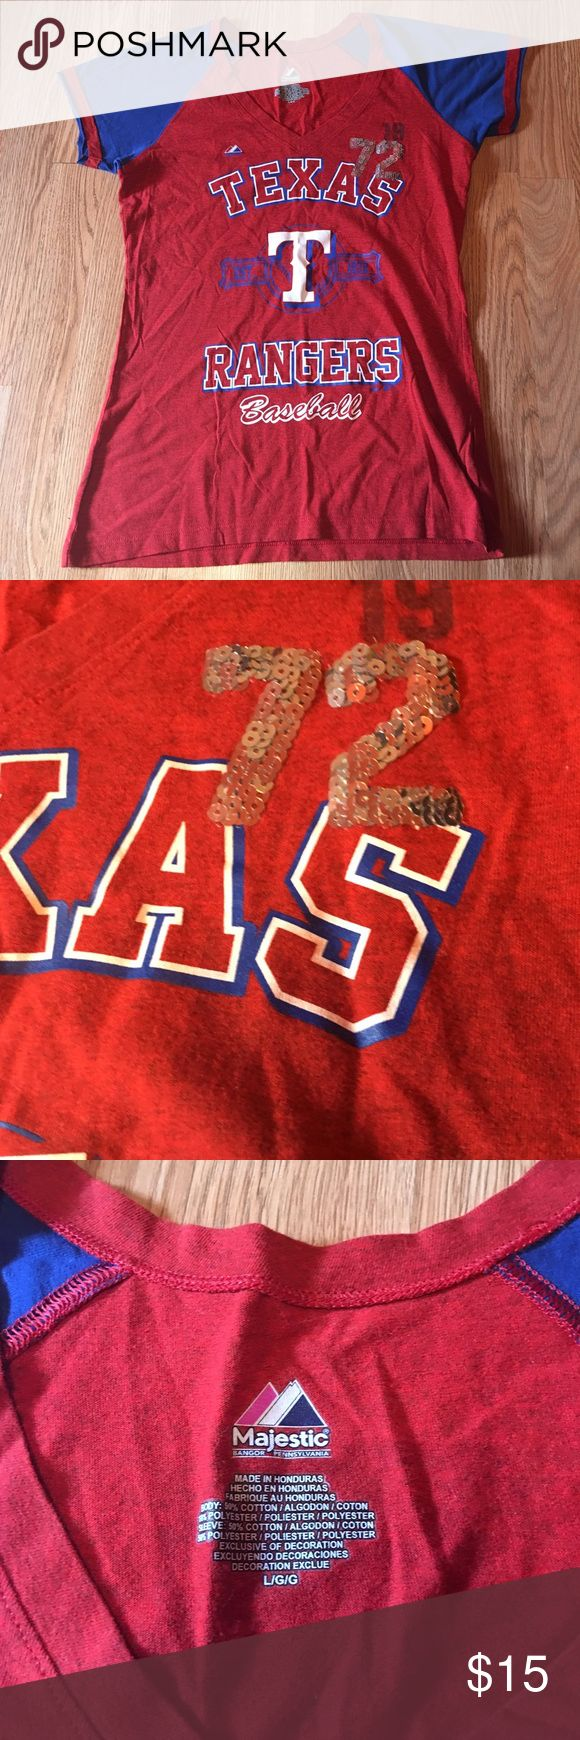 Texas Ranger's Top Great condition. No rips No stains. Size Large Texas Ranger's  Tops Tees - Short Sleeve